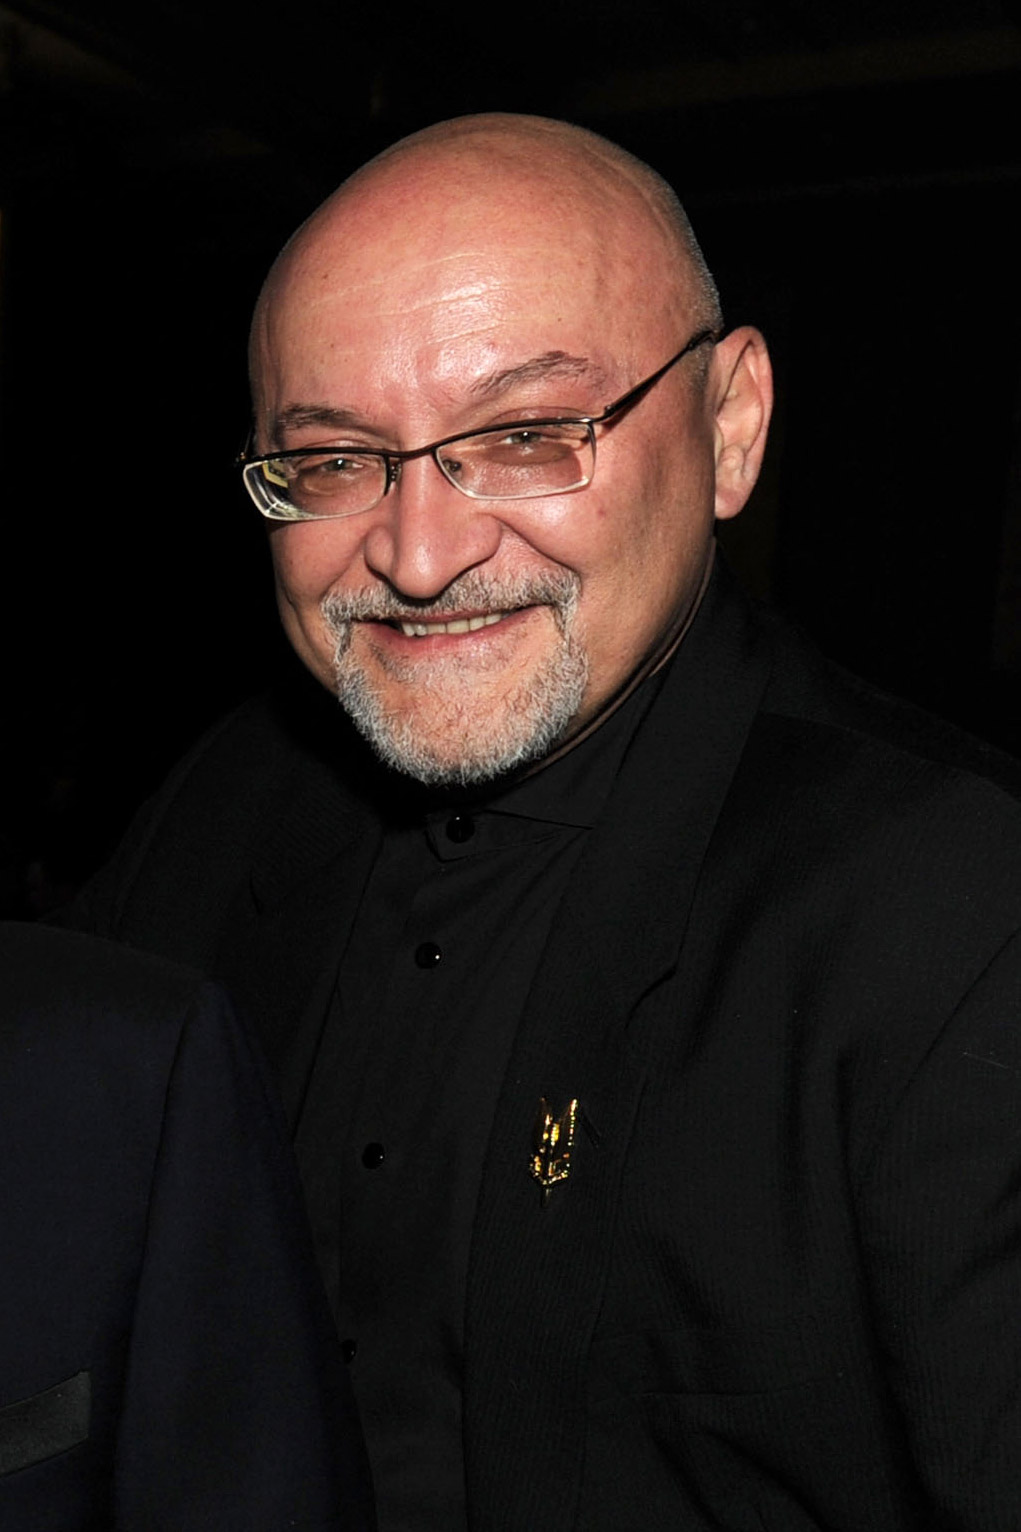 frank darabont biography